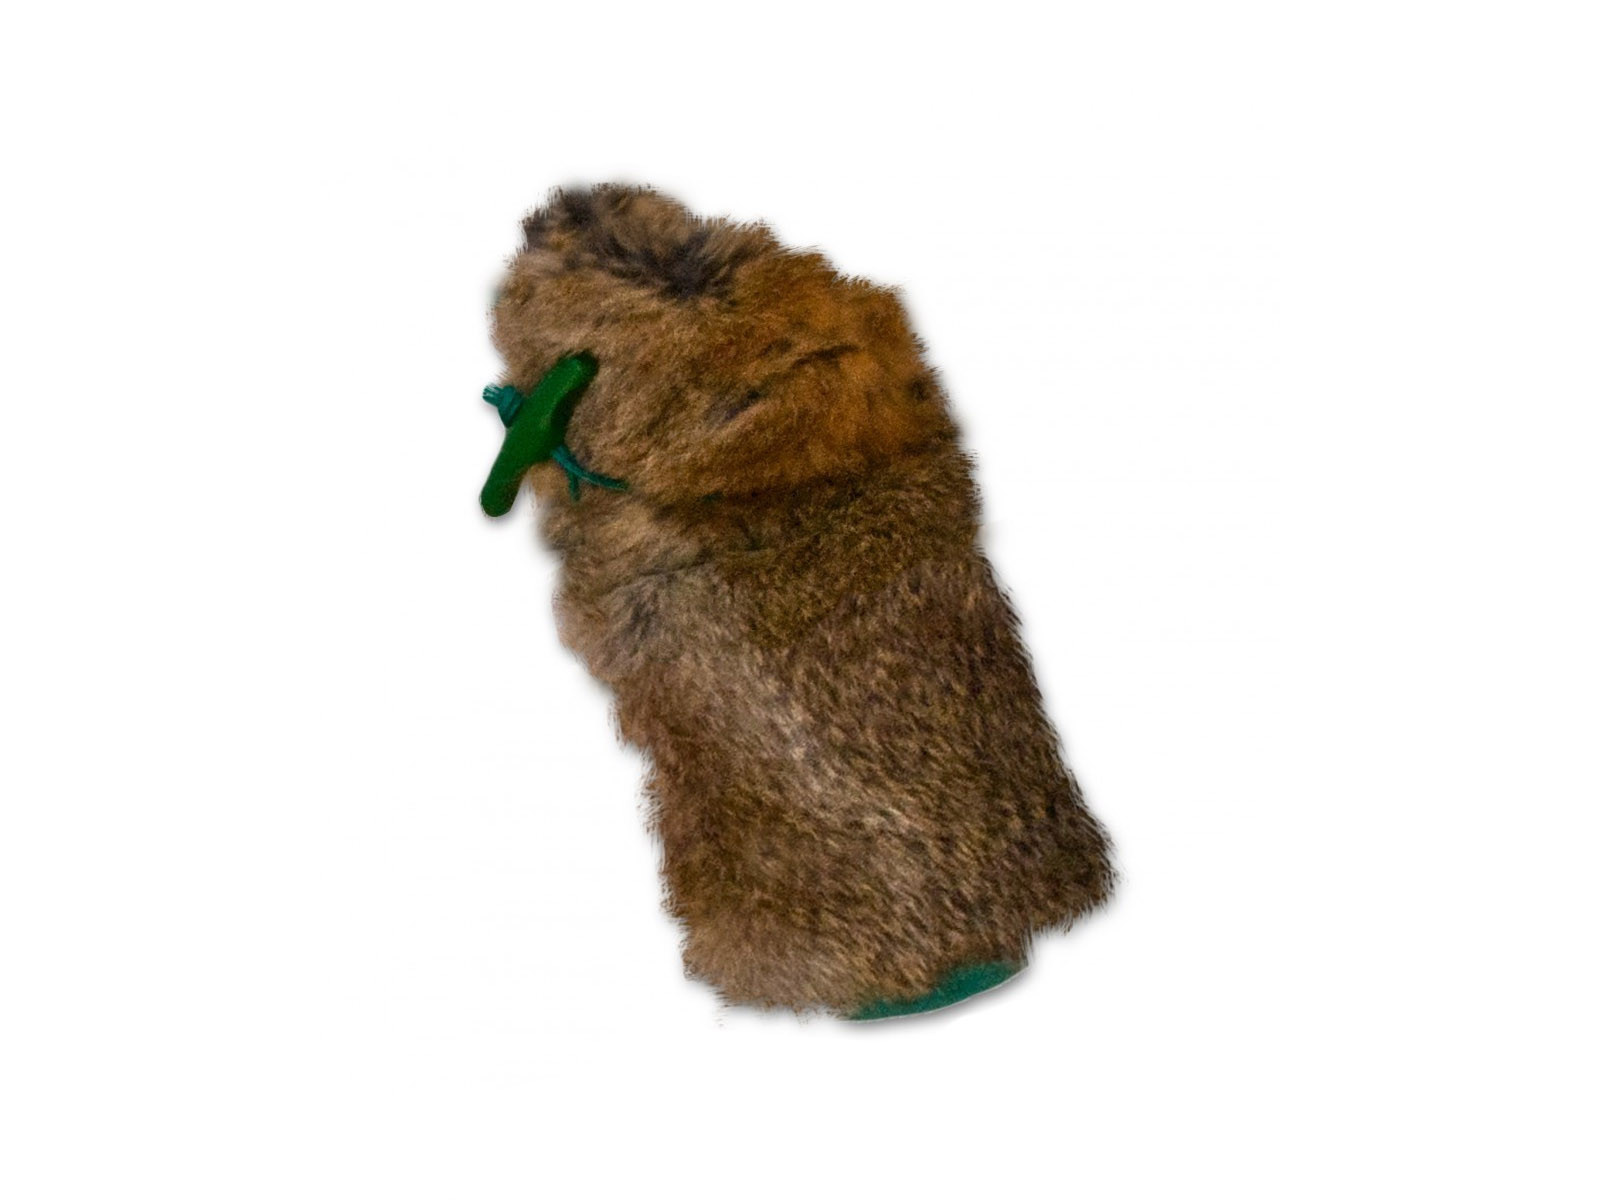 1/2lb Rabbit Throwing Dummy